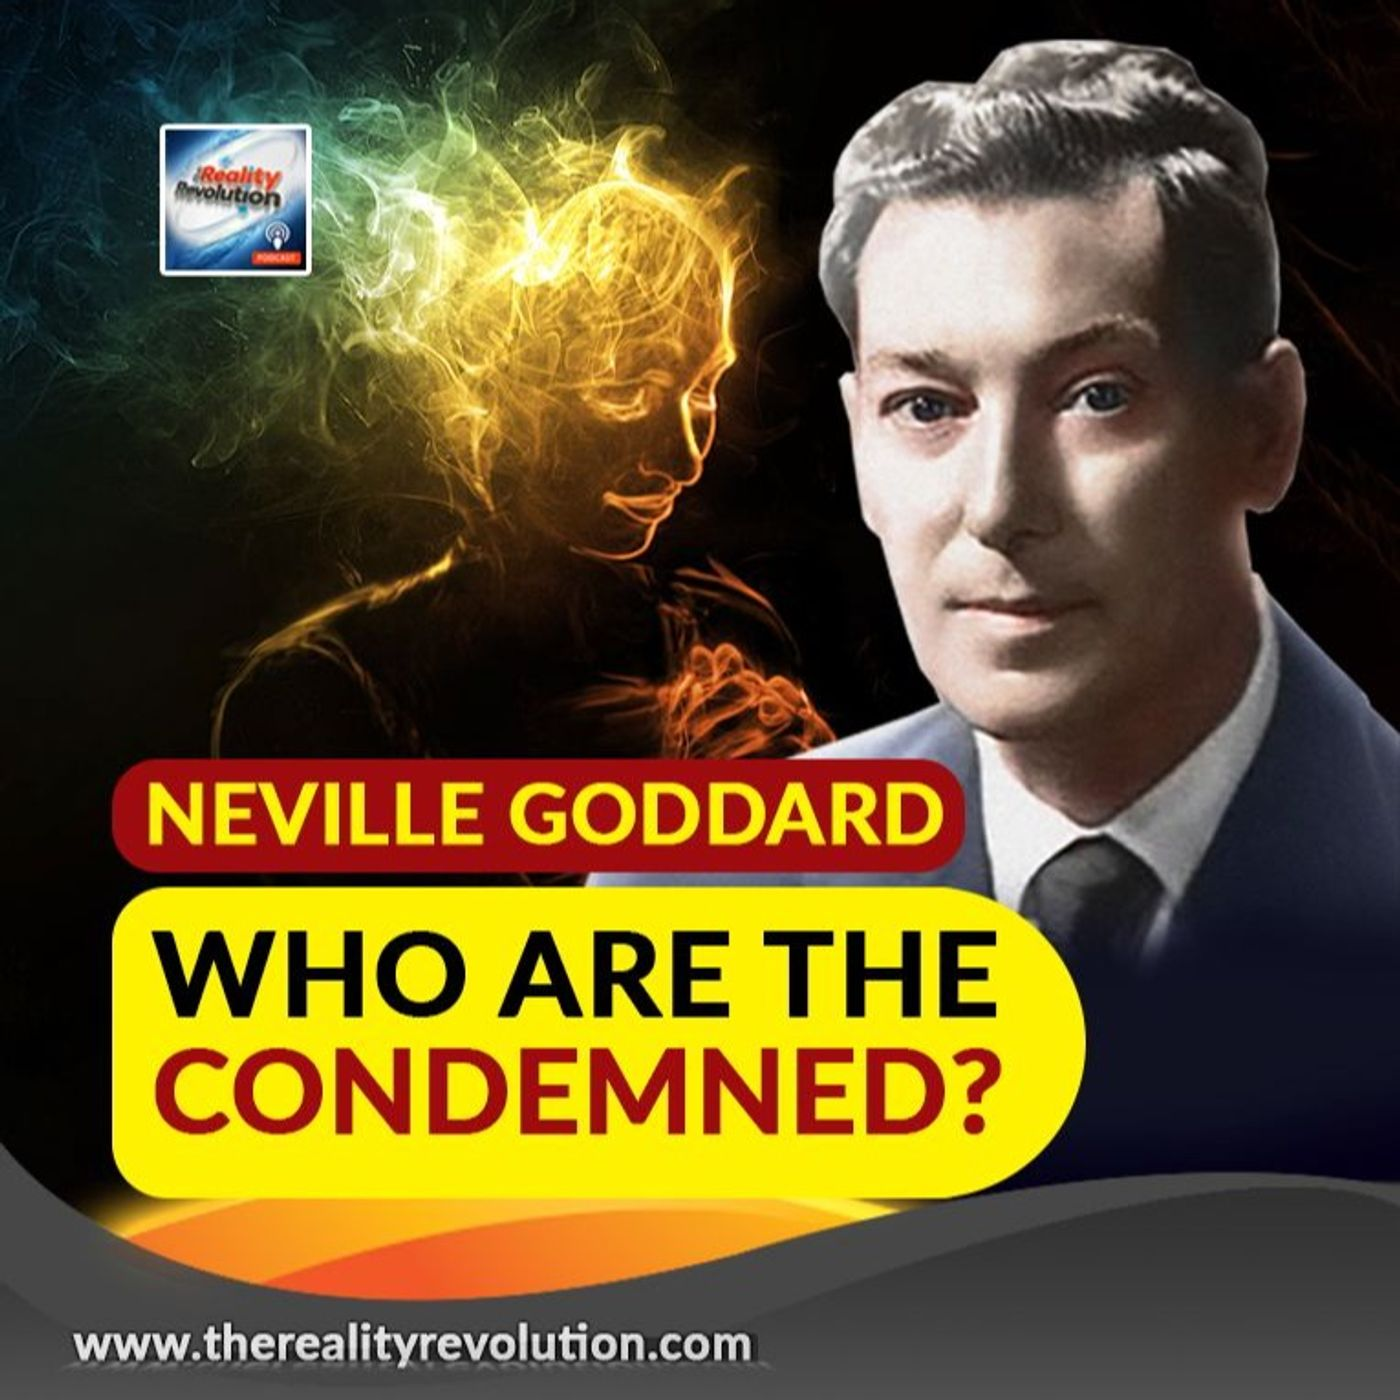 Neville Goddard Who Are The Condemned?